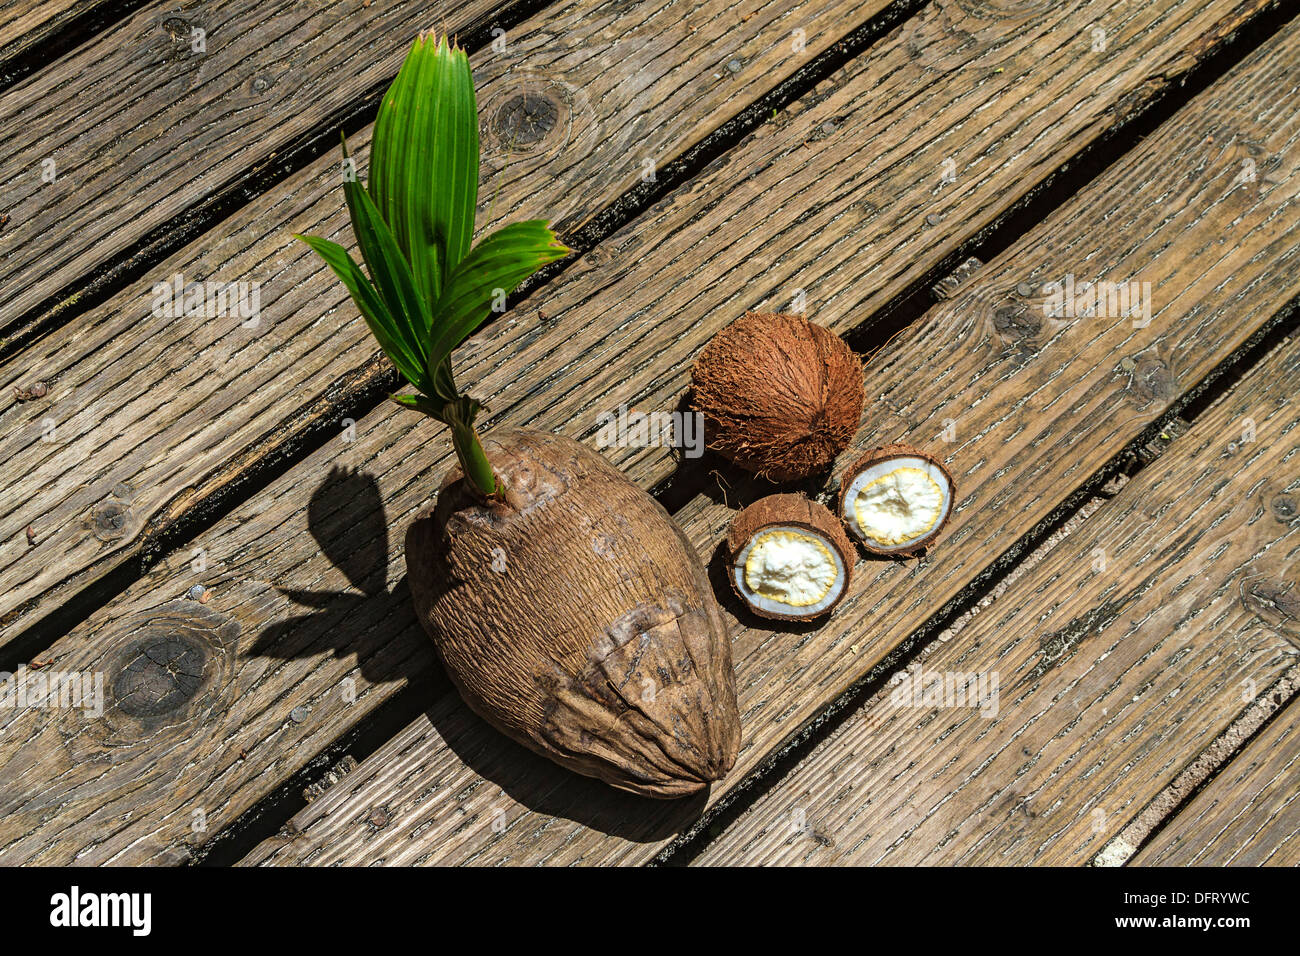 Various stages of coconut: coconut with young sprout sits next to husked coconut and opened coconut with endosperm Stock Photo